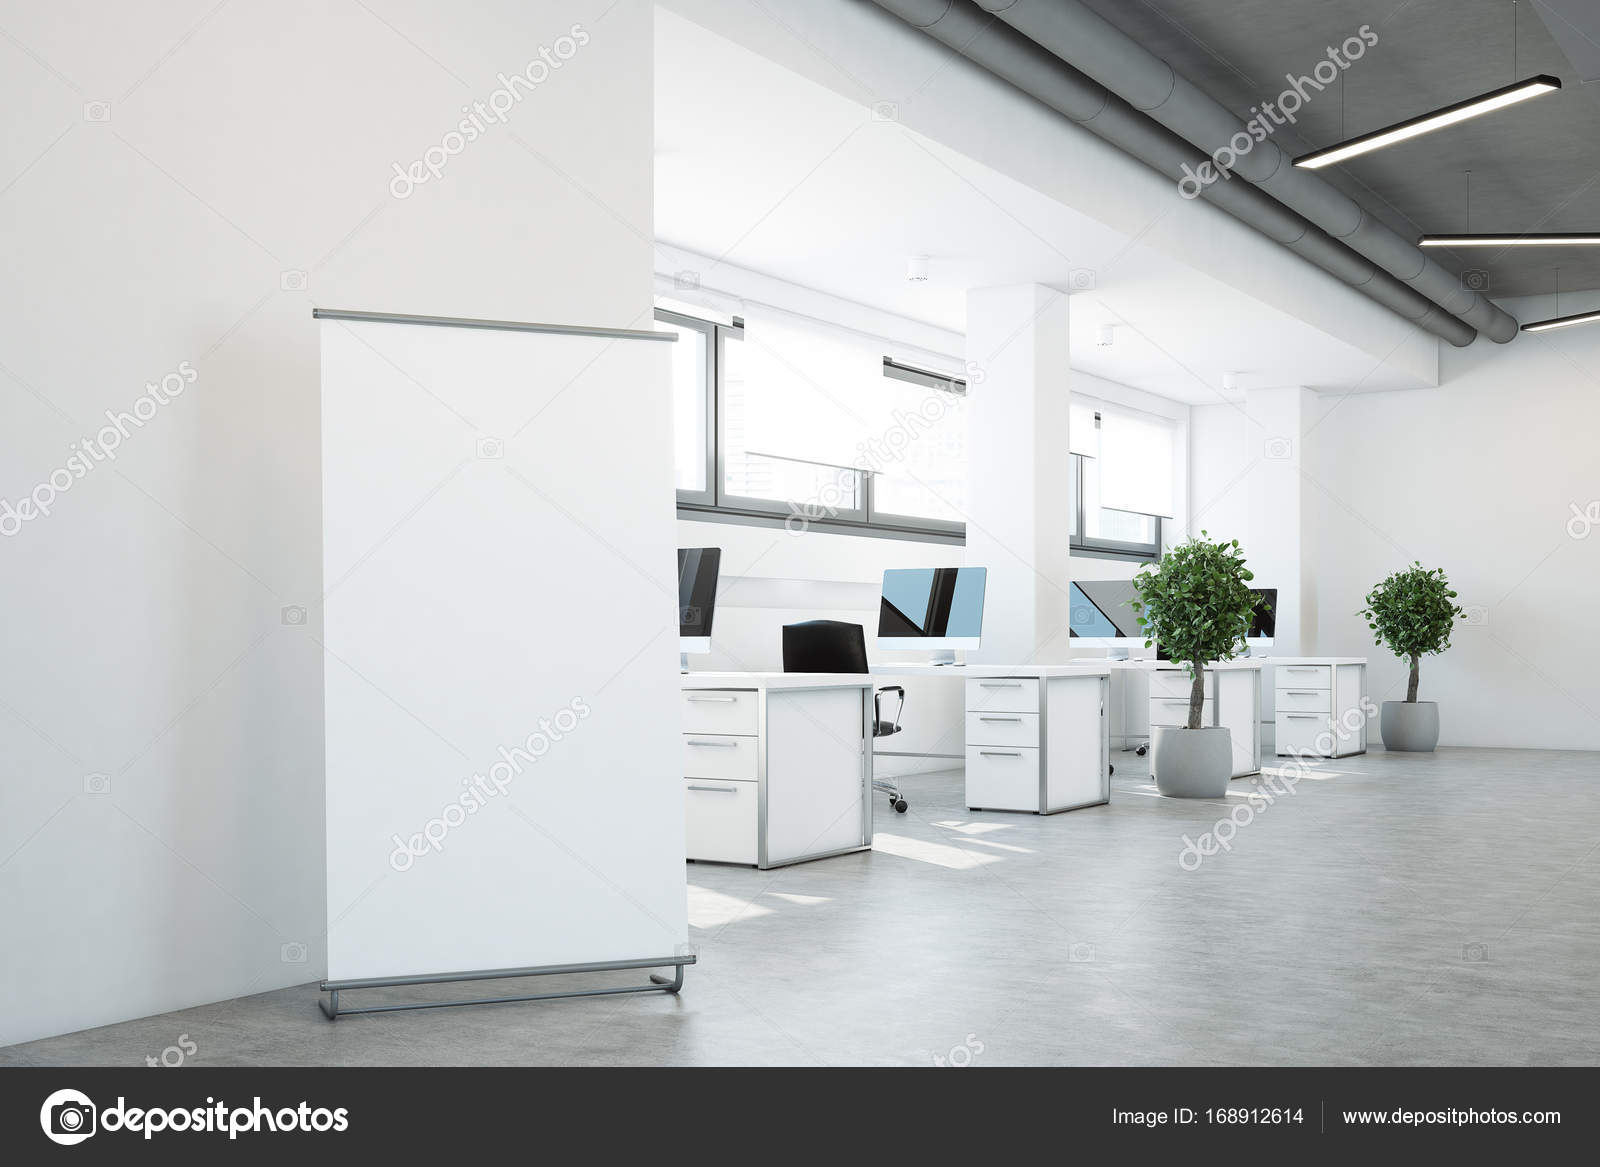 Light conference room or office open space interior vector free